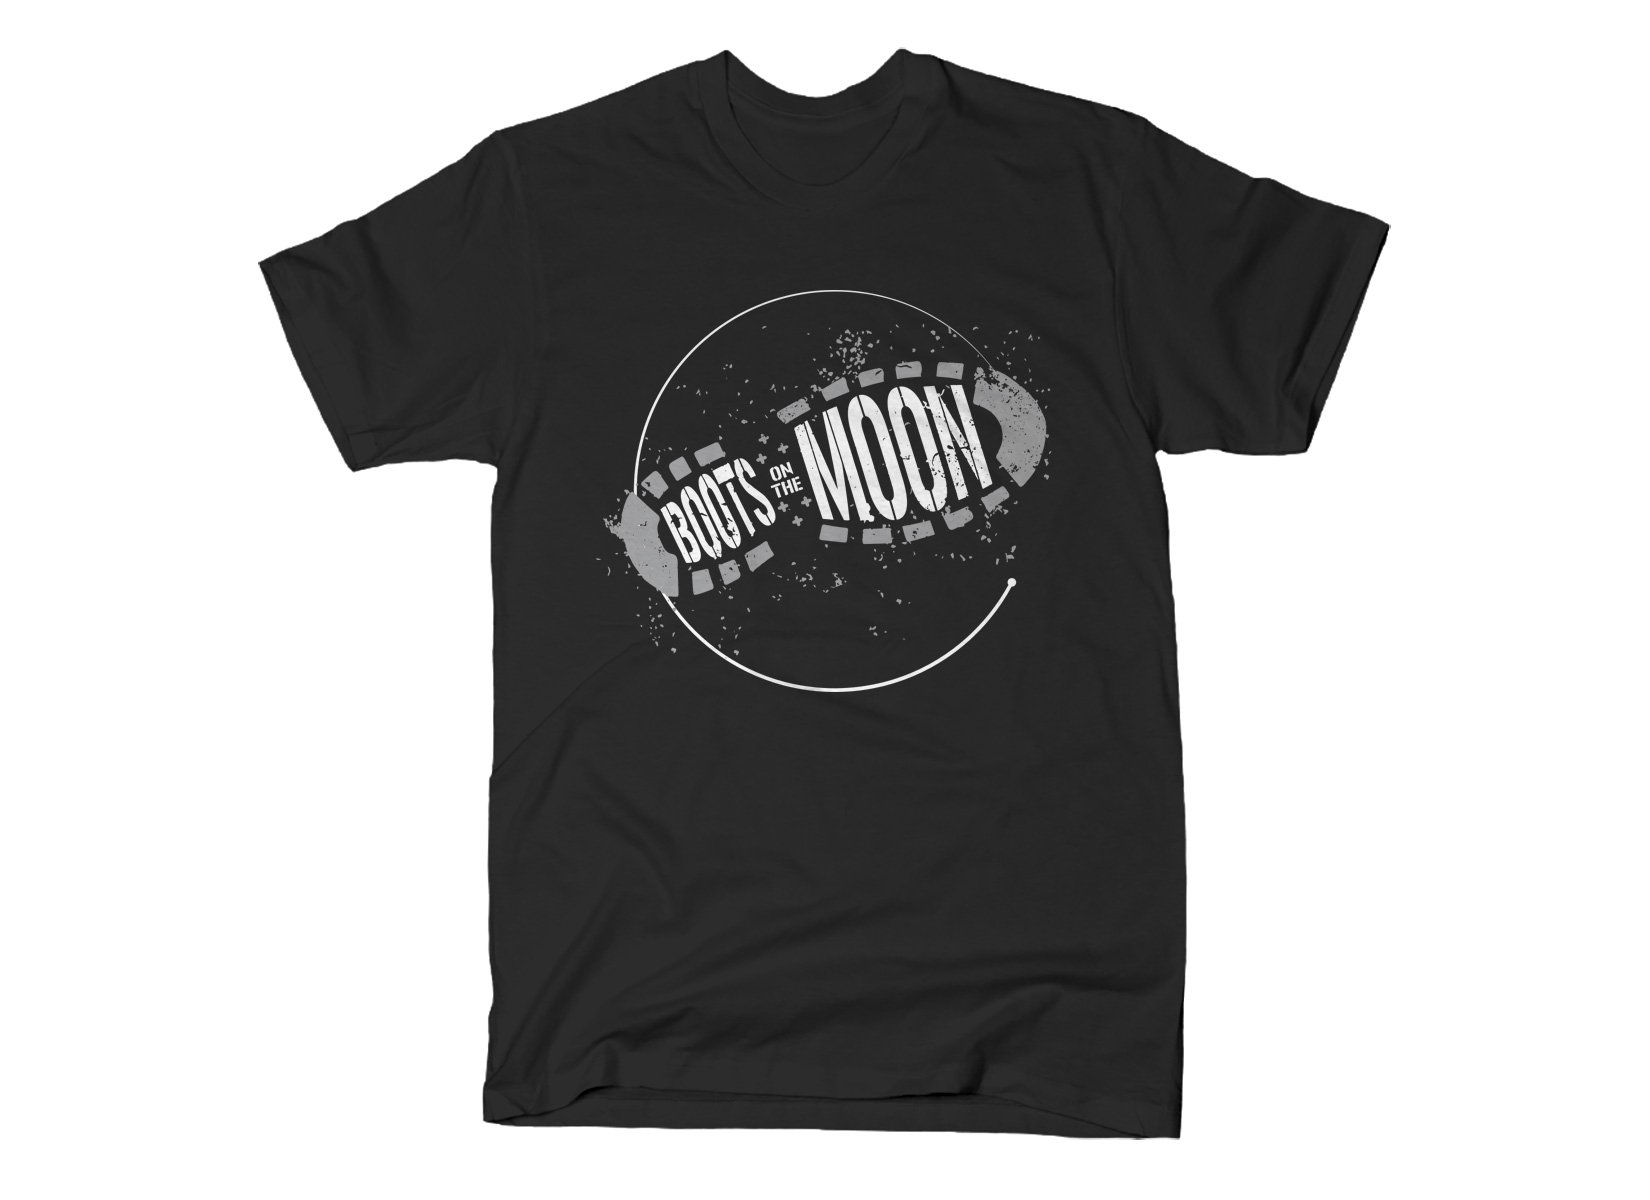 Boots On The Moon on Mens T-Shirt